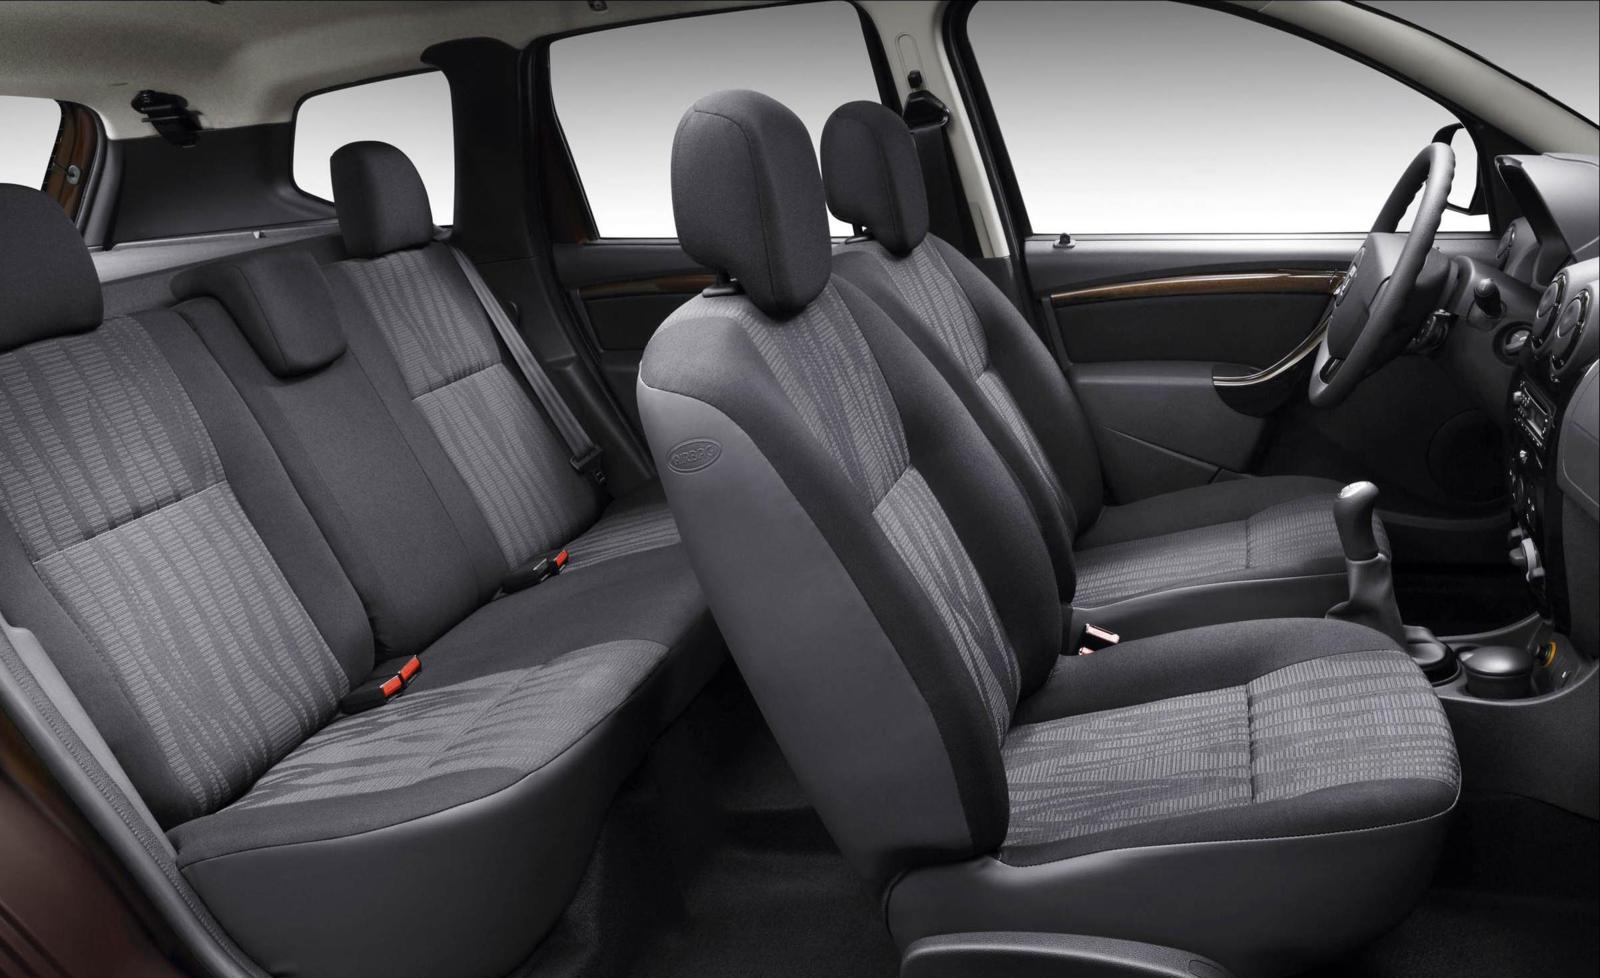 dacia duster 2012 interior front seat driver. Black Bedroom Furniture Sets. Home Design Ideas